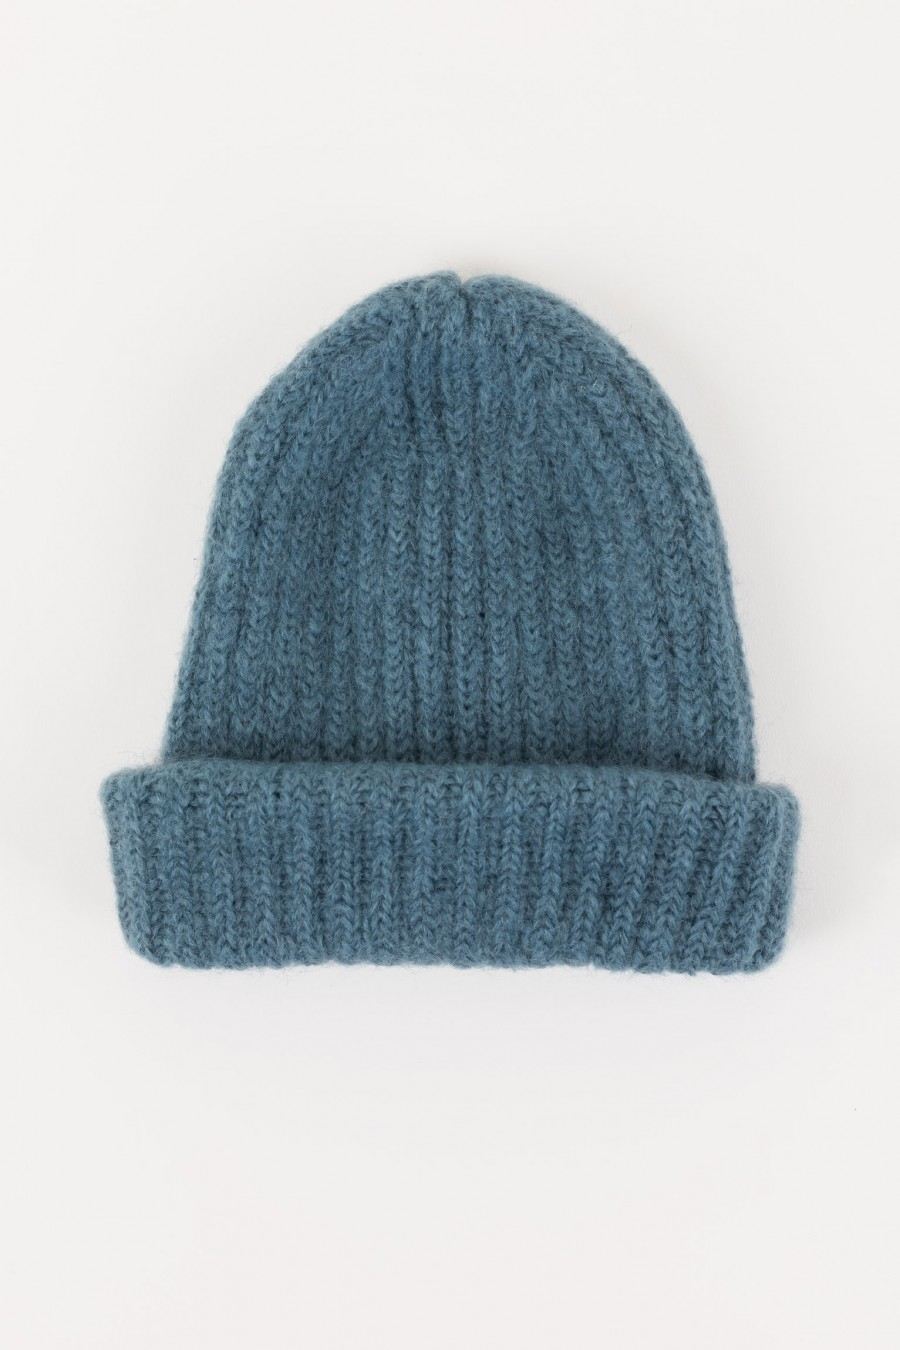 Blue hat with cuff